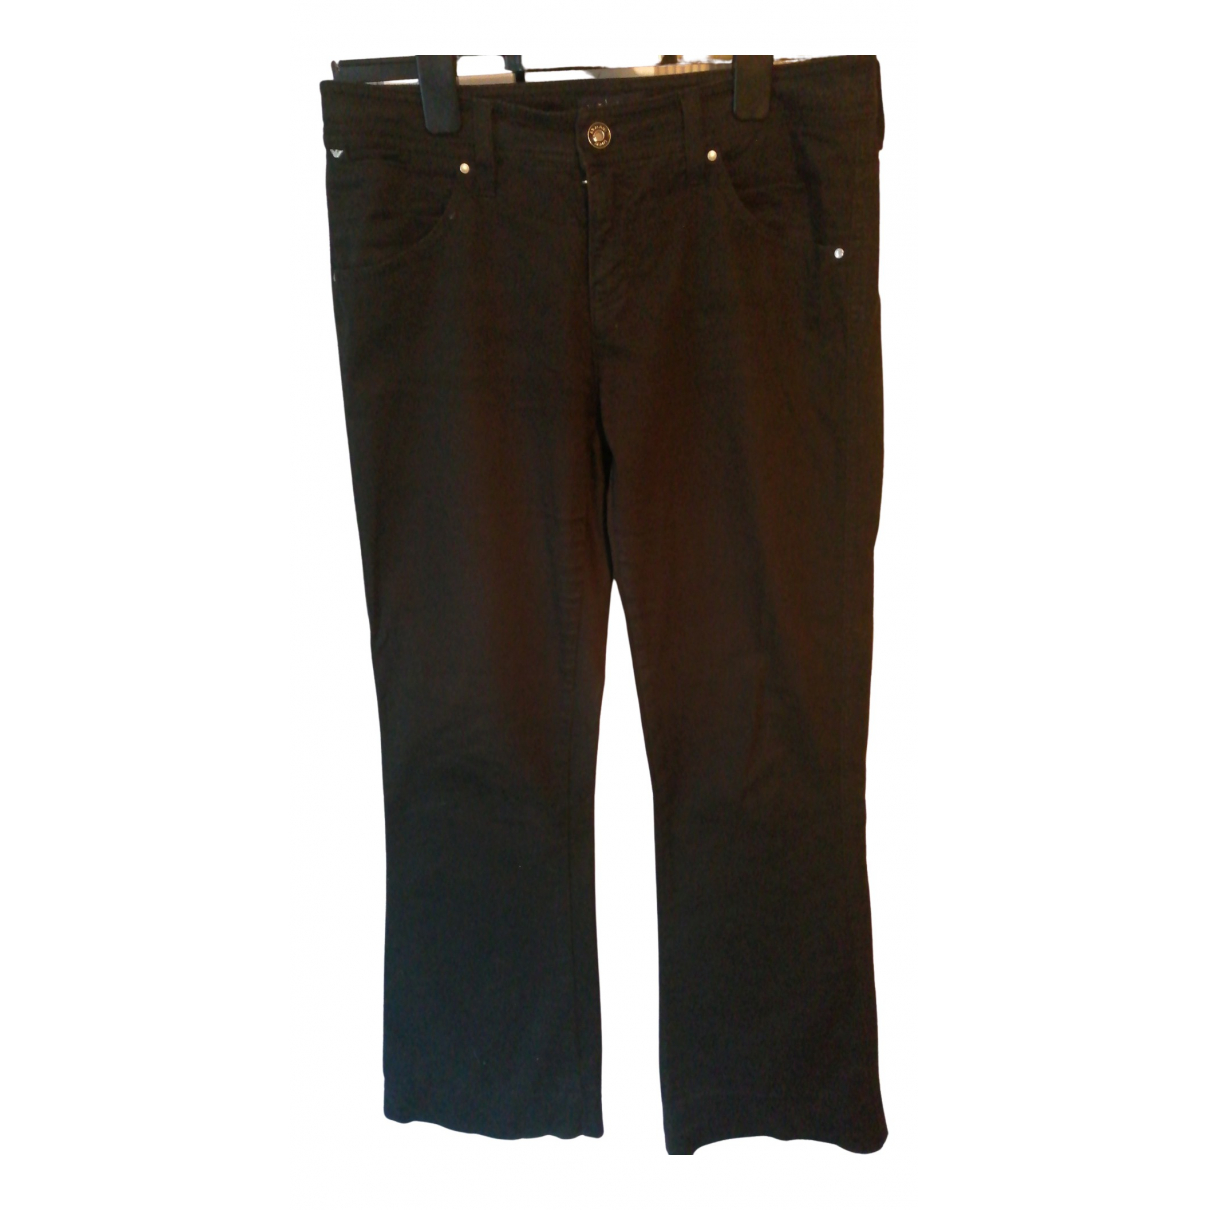 Armani Jeans N Navy Cotton Jeans for Women 28 US